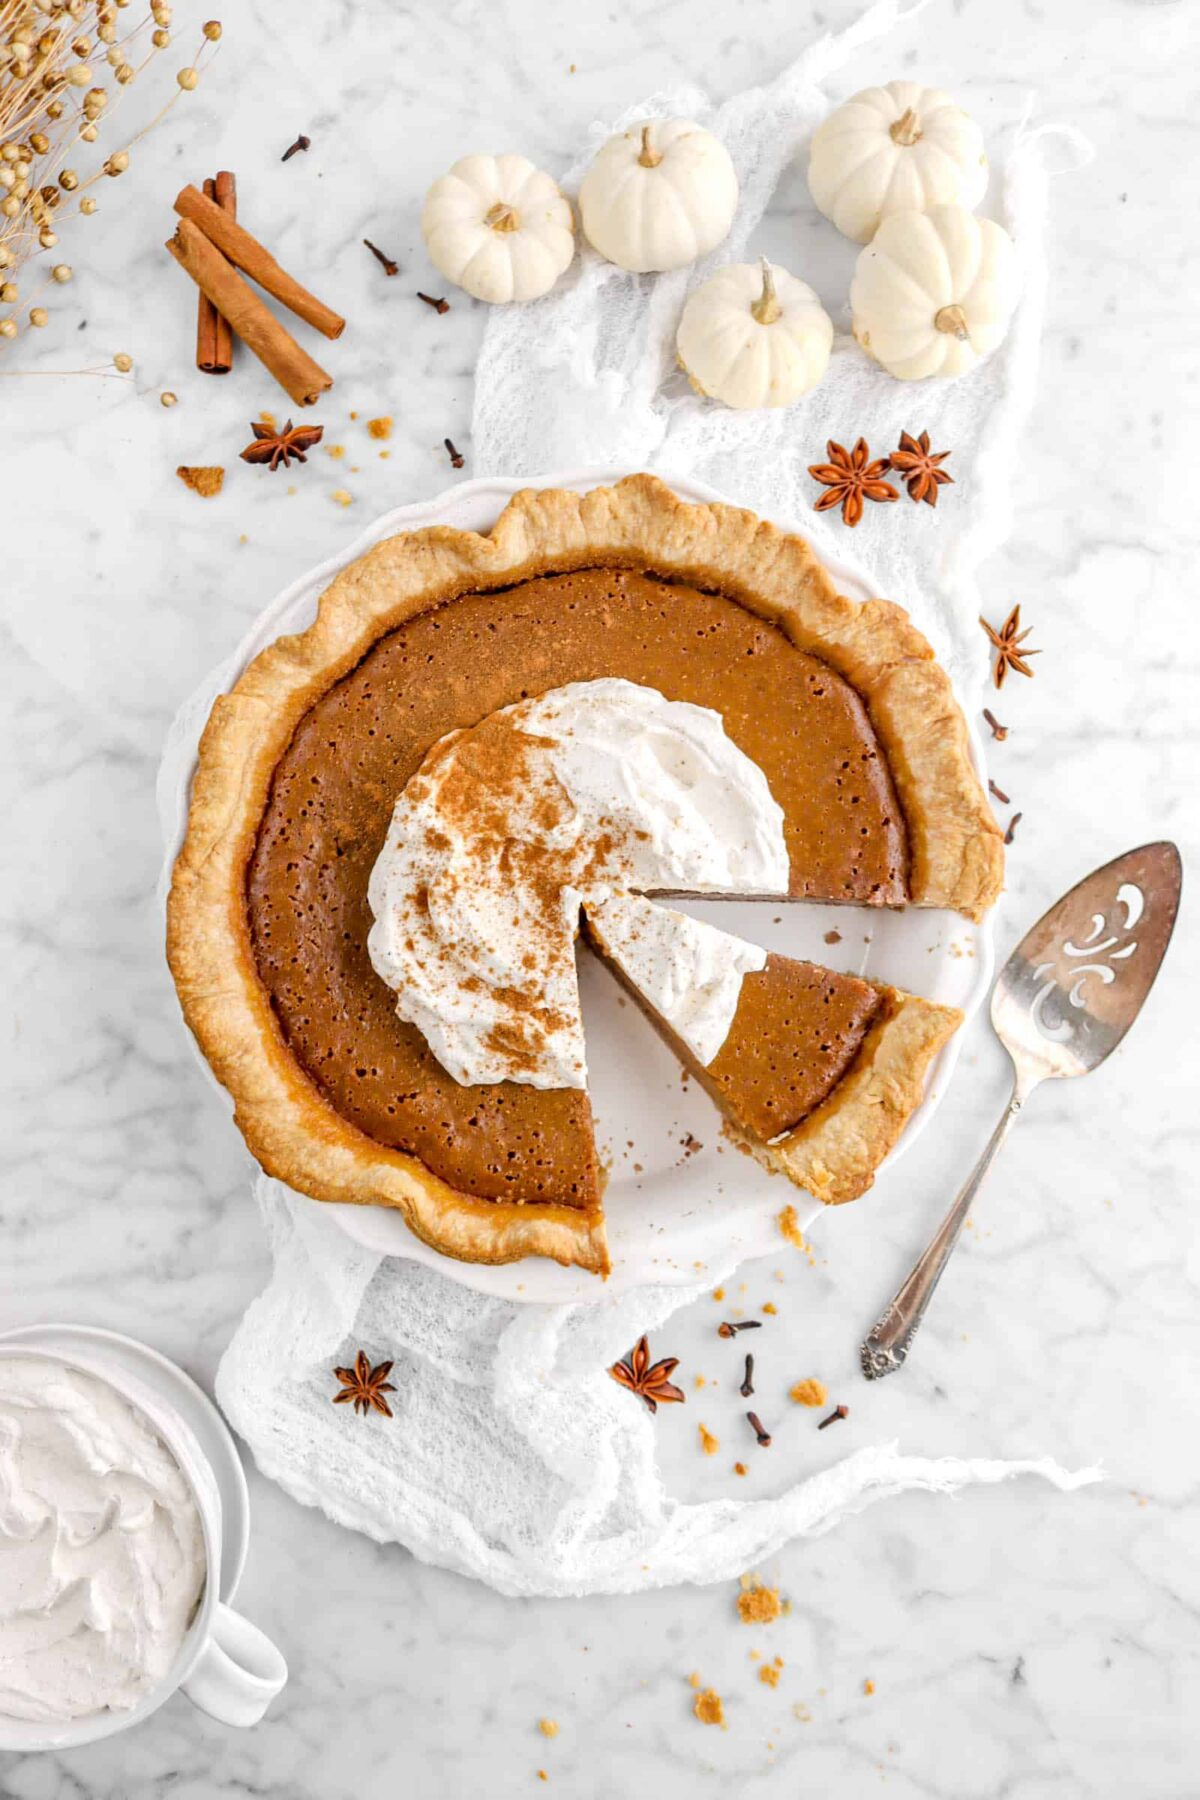 pumpkin pie cut with slice still in pie with whole spices and mini pumpkins around